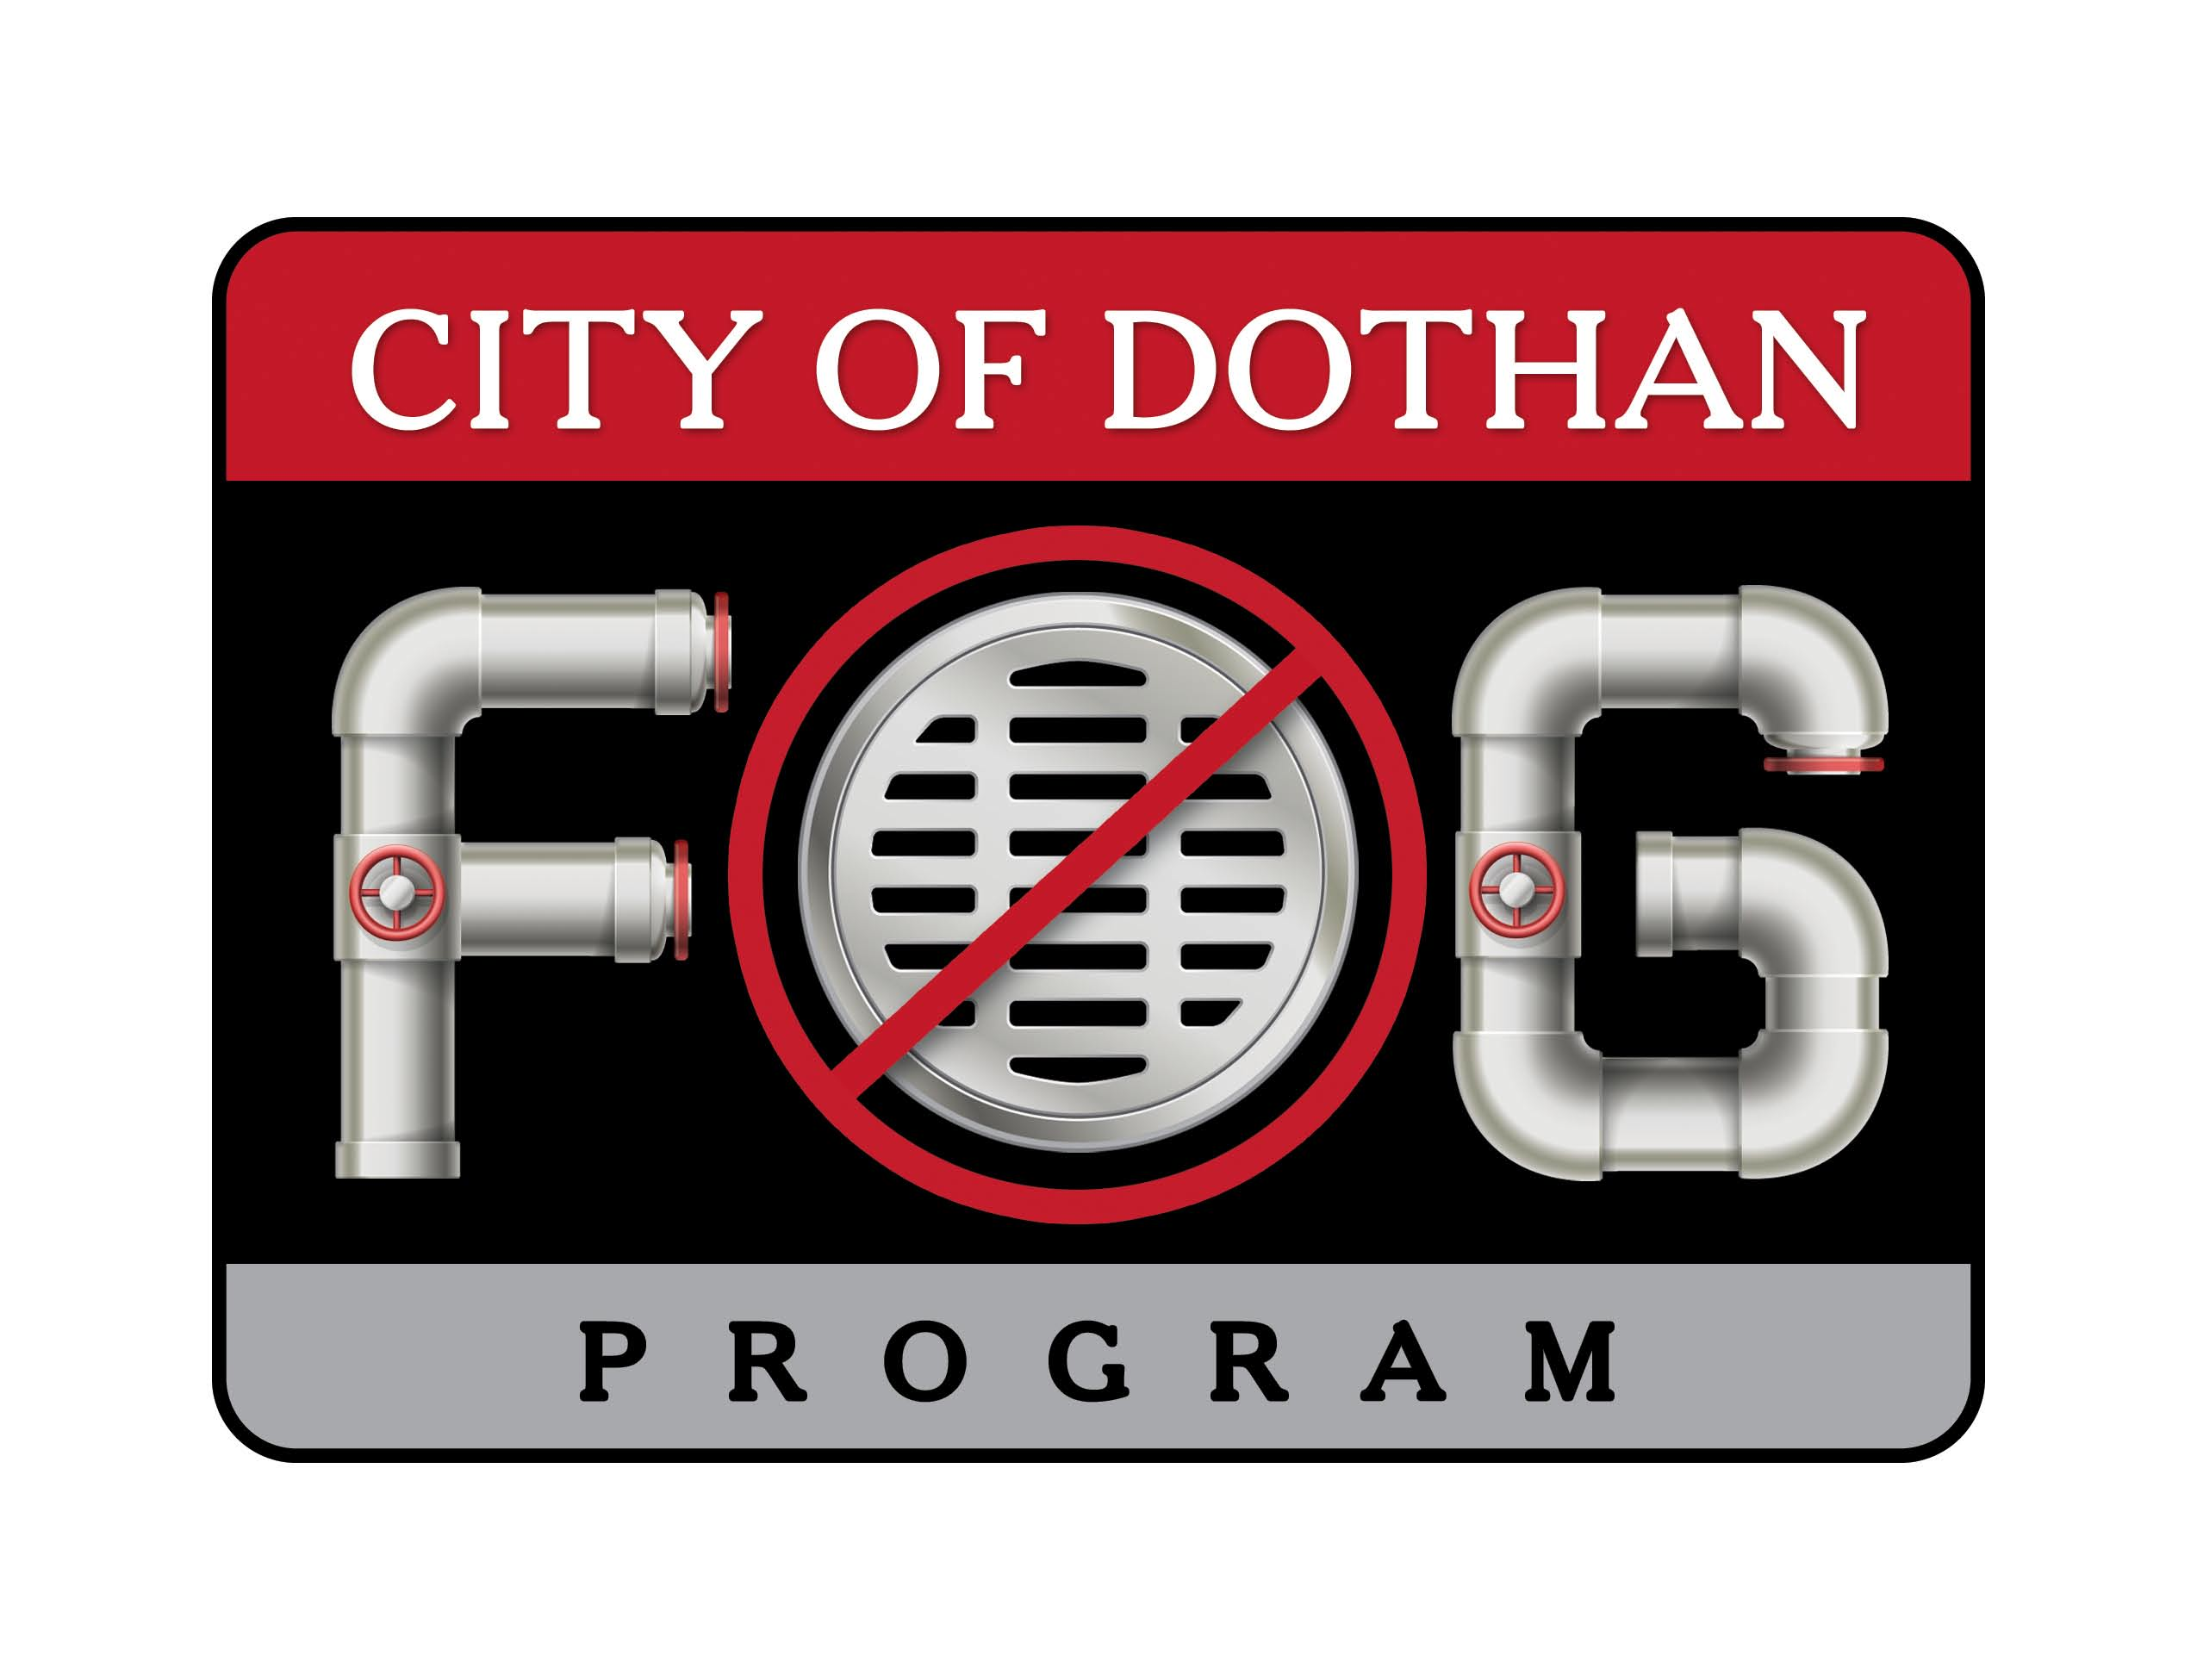 City of Dothan Fat, Oils and Grease Program